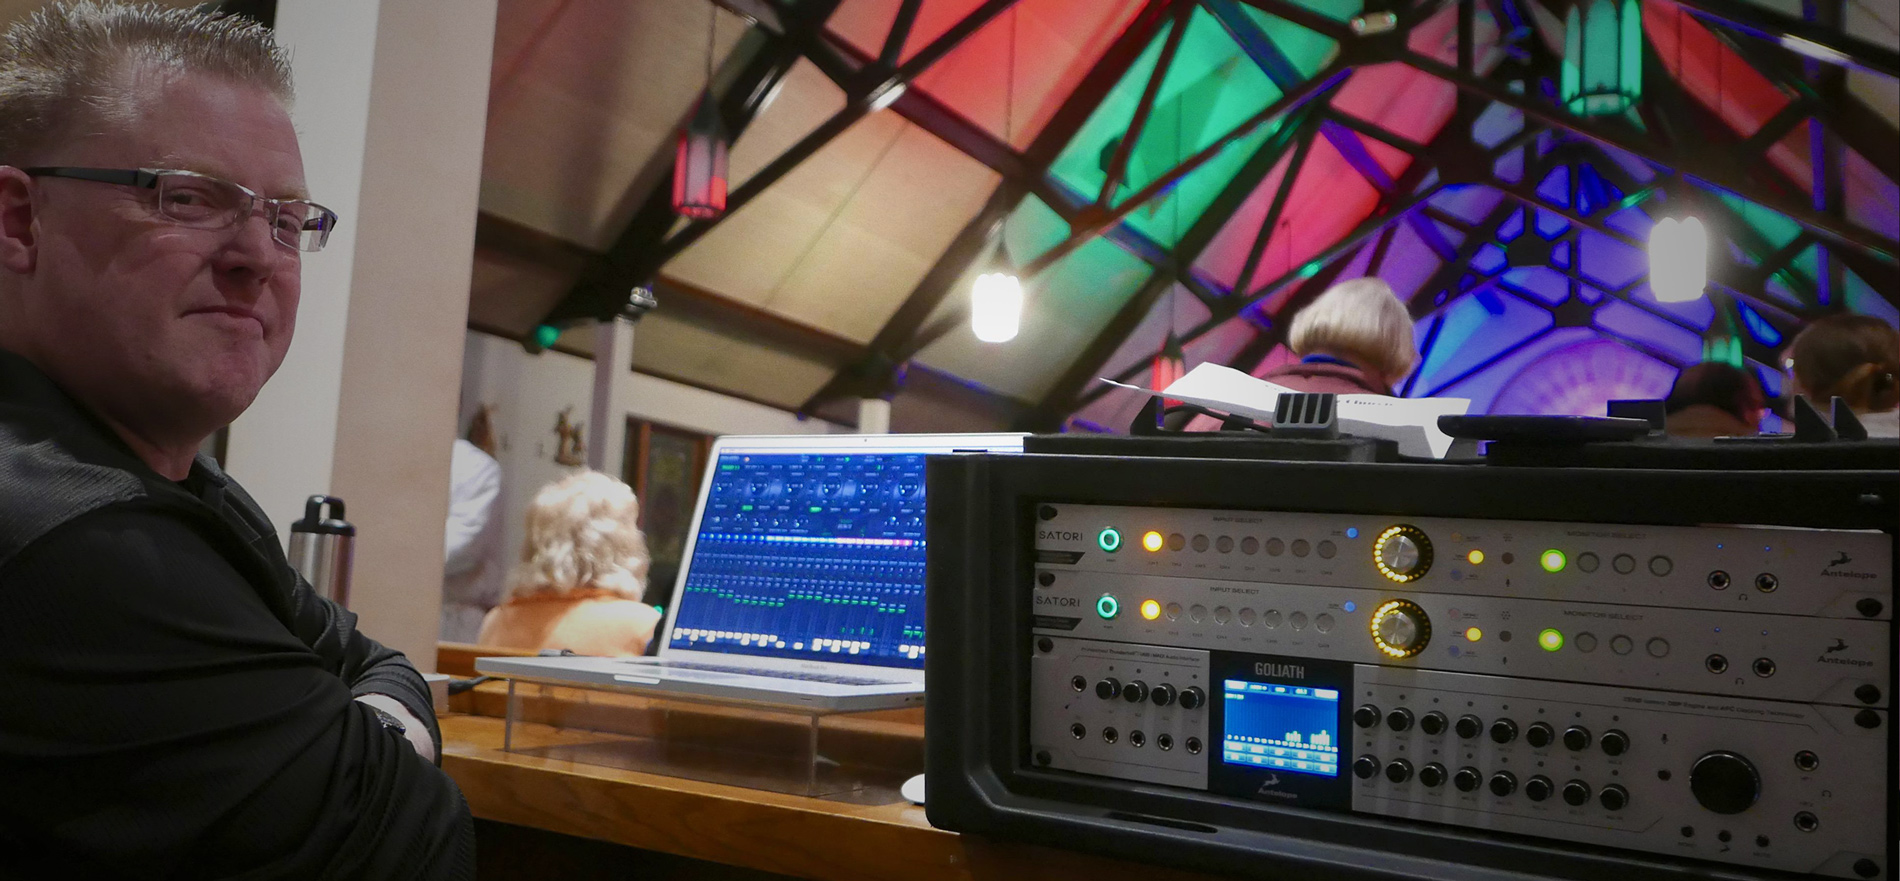 The SoundChaser™ finds the Holy Grail of Audio Technology with Antelope Audio Goliath Interface